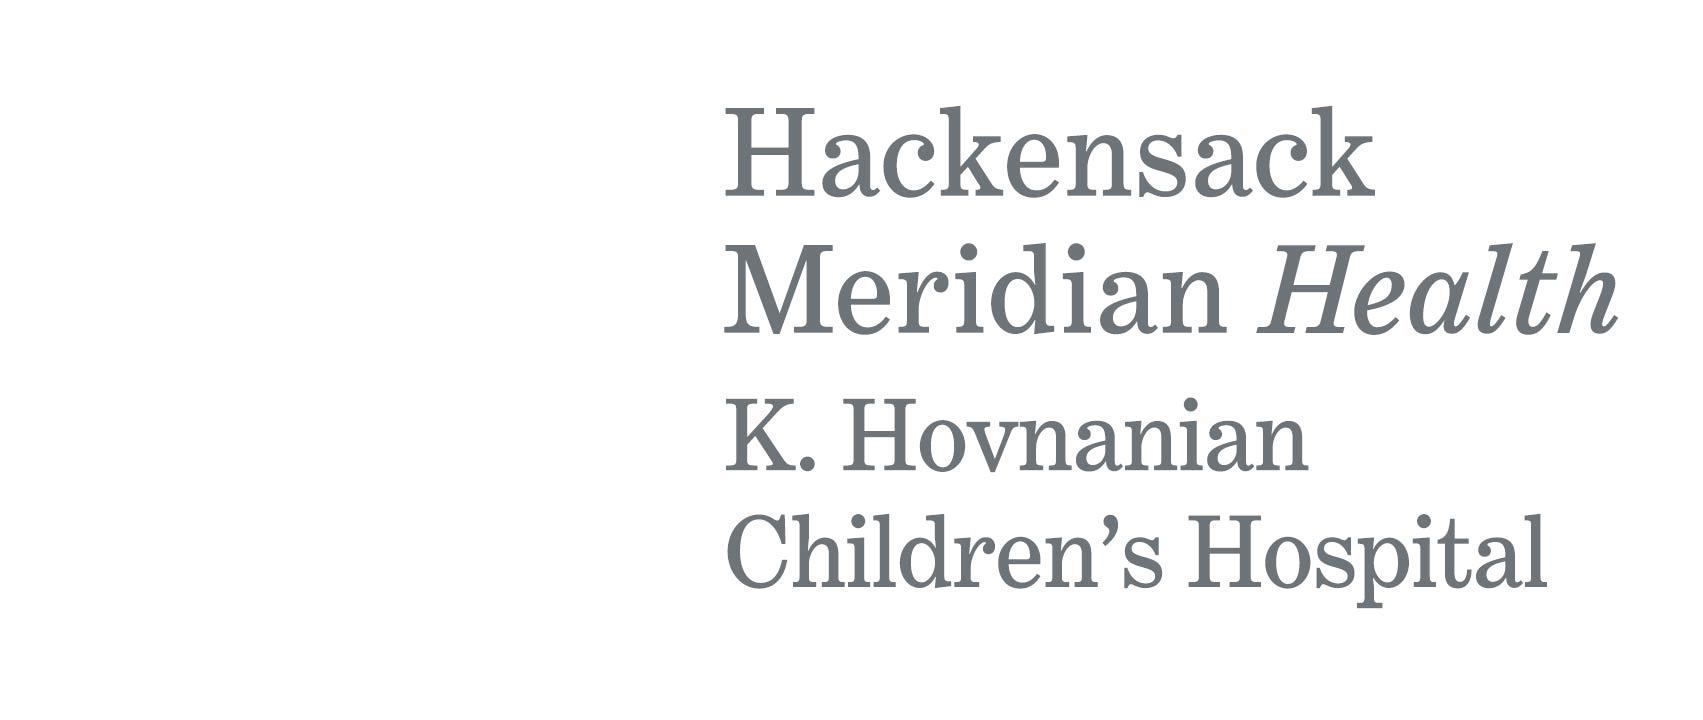 Pediatric Gastroenterologist - K Hovnanian Children's Hospital